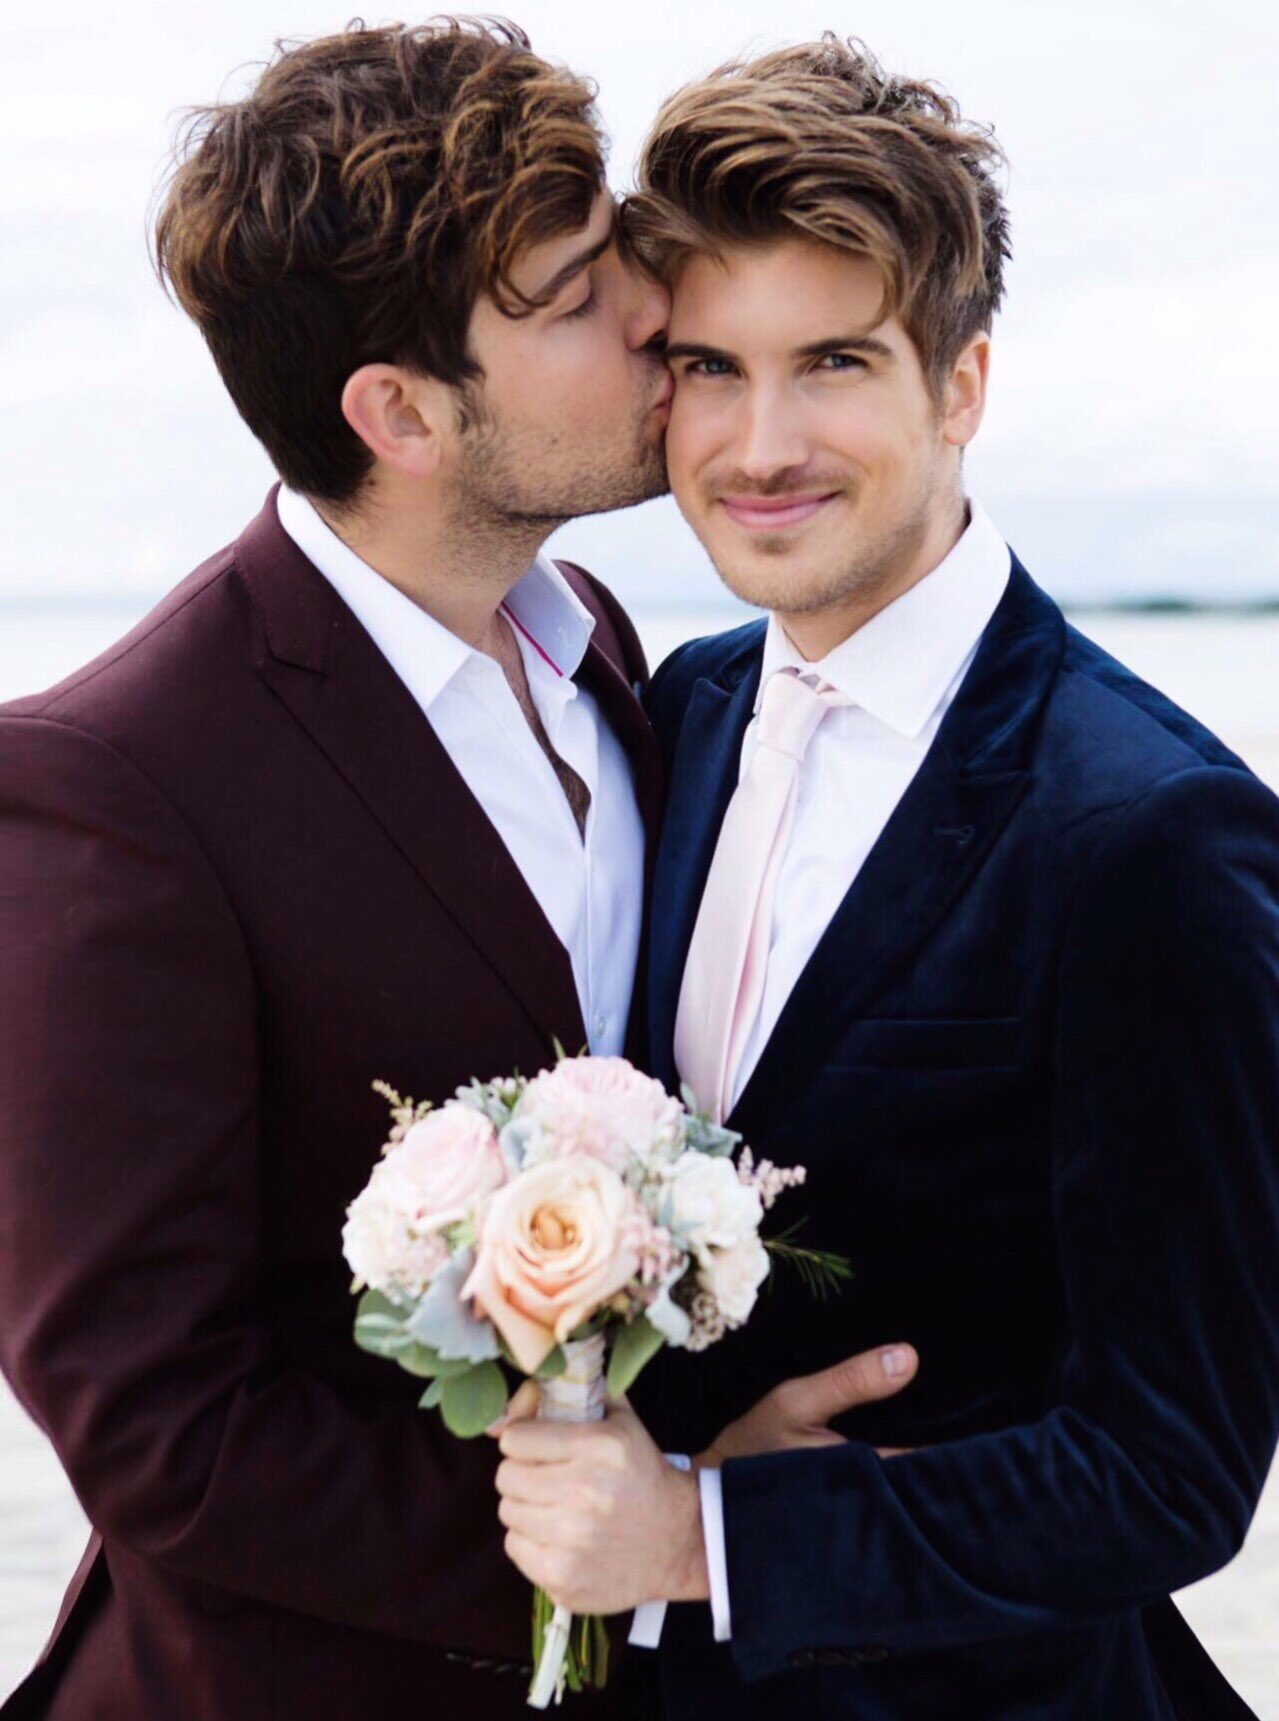 joey graceffa and daniel christopher relationship goals